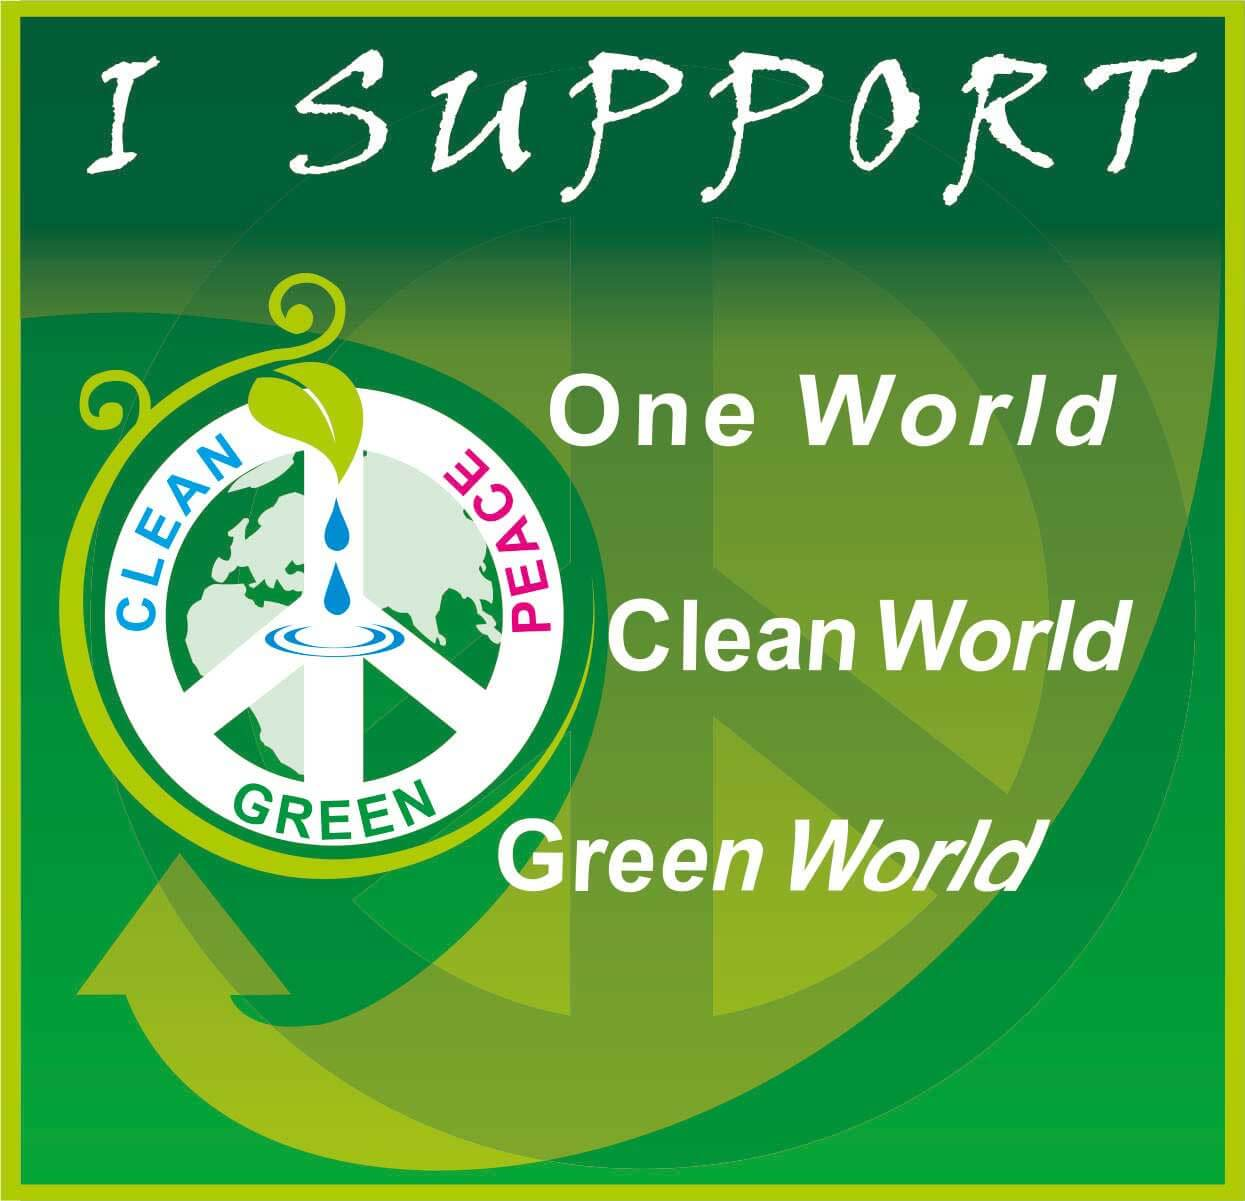 world environment day clean green peace